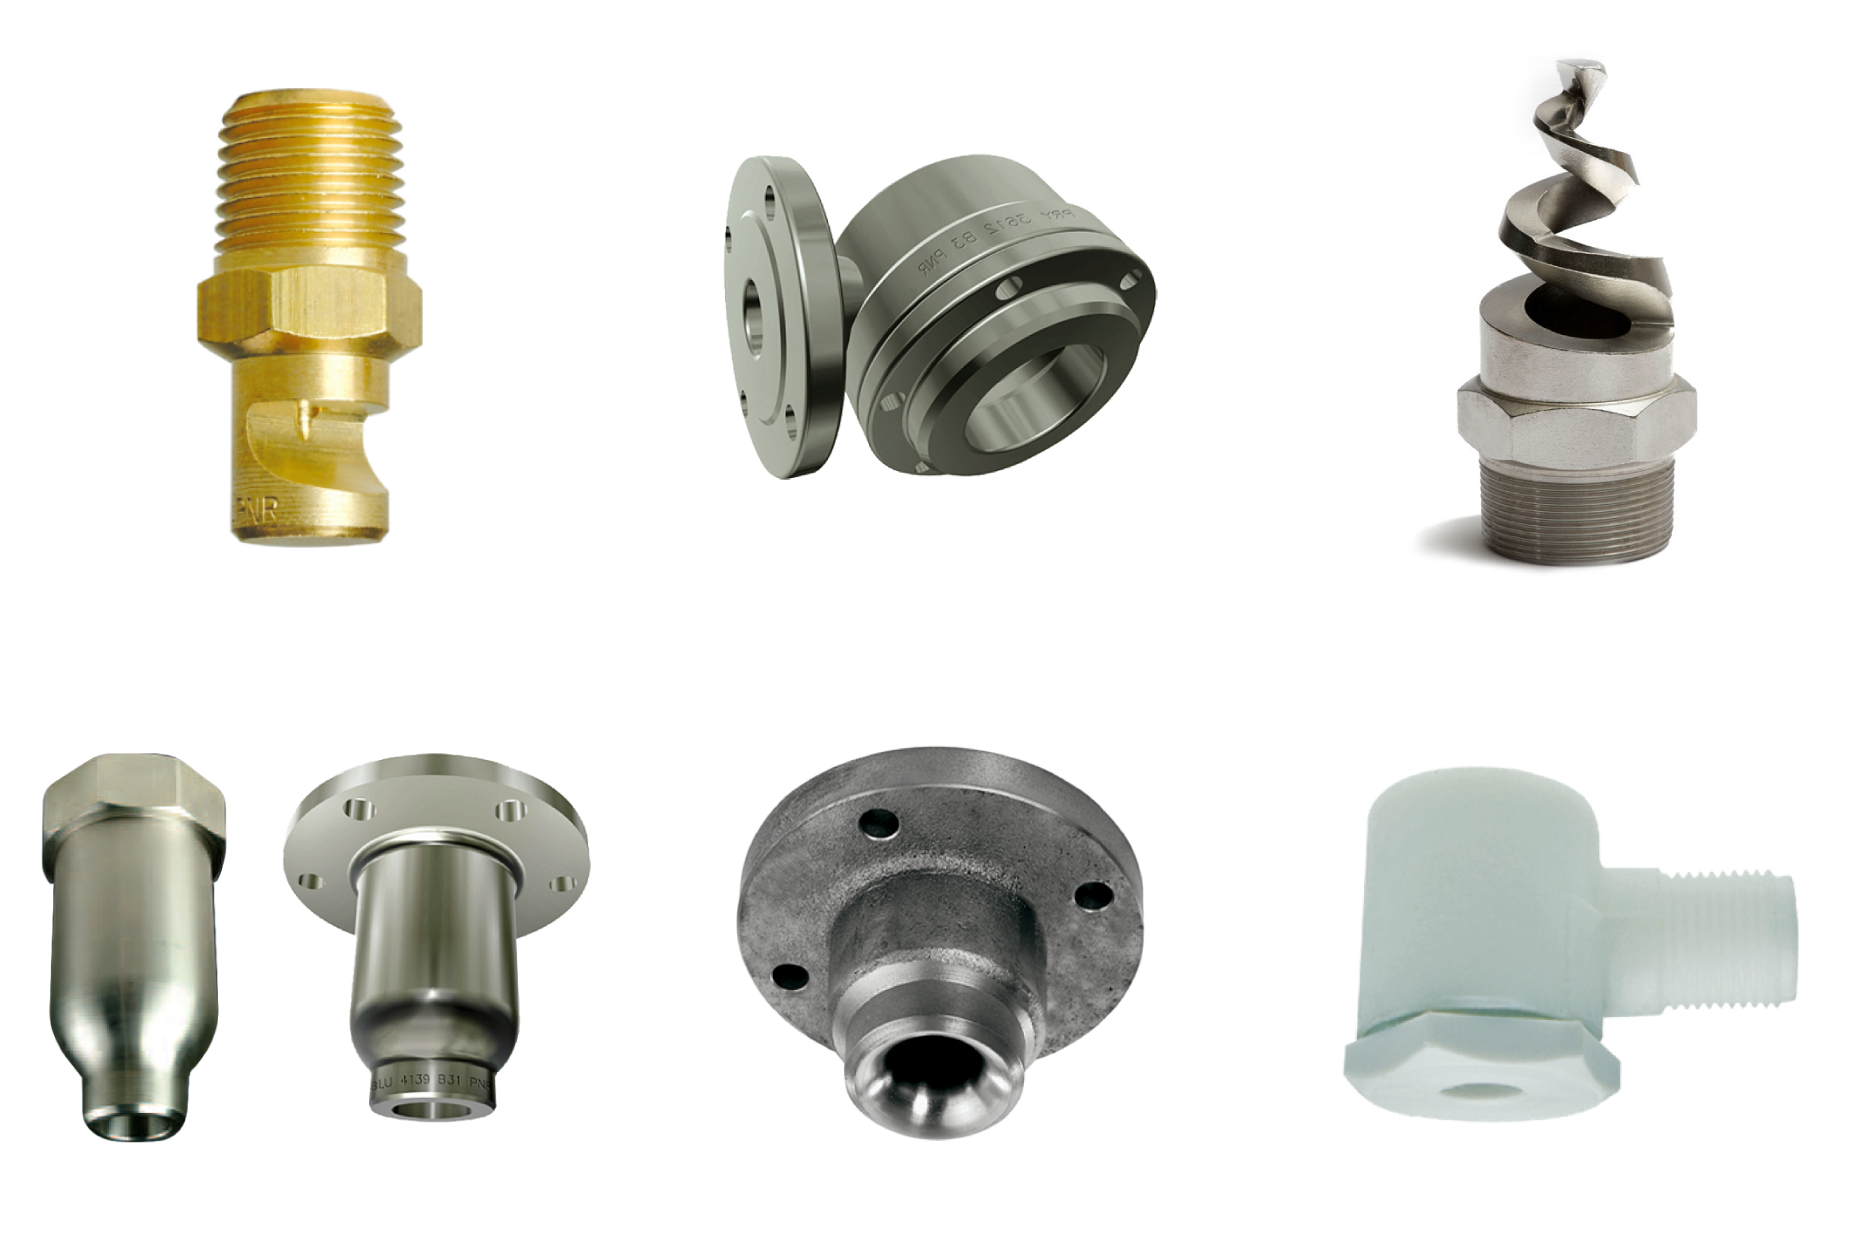 Nozzles for metals industry to cool hot and